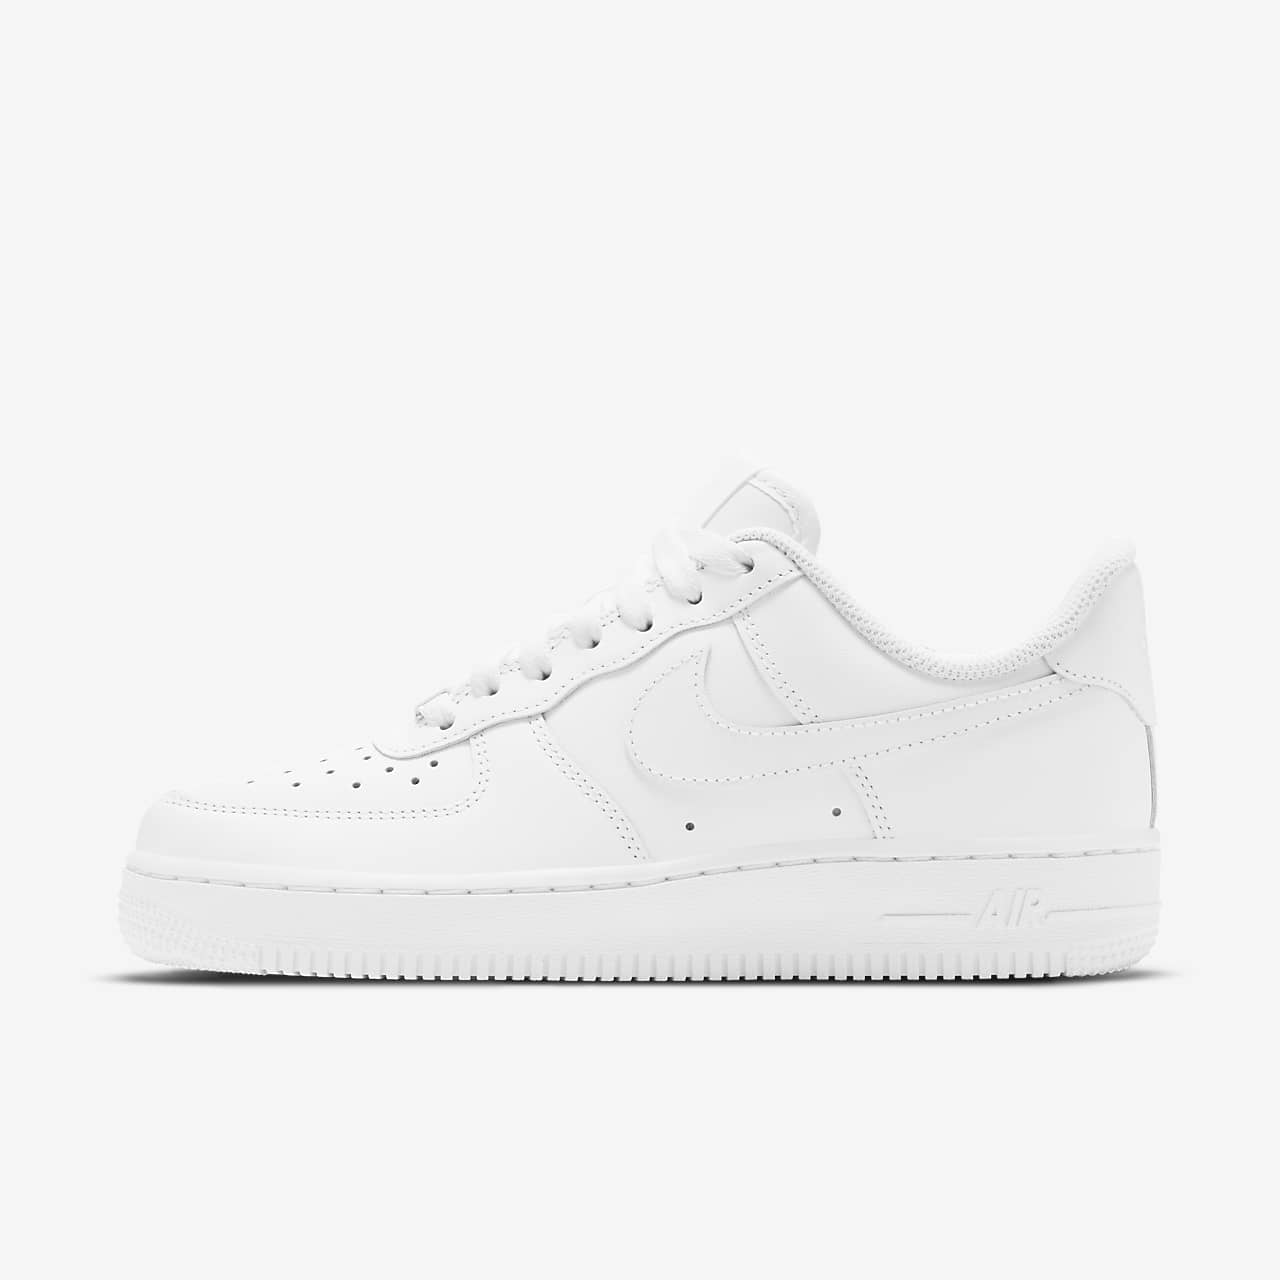 ... Nike Air Force 1 '07 Women's Shoe